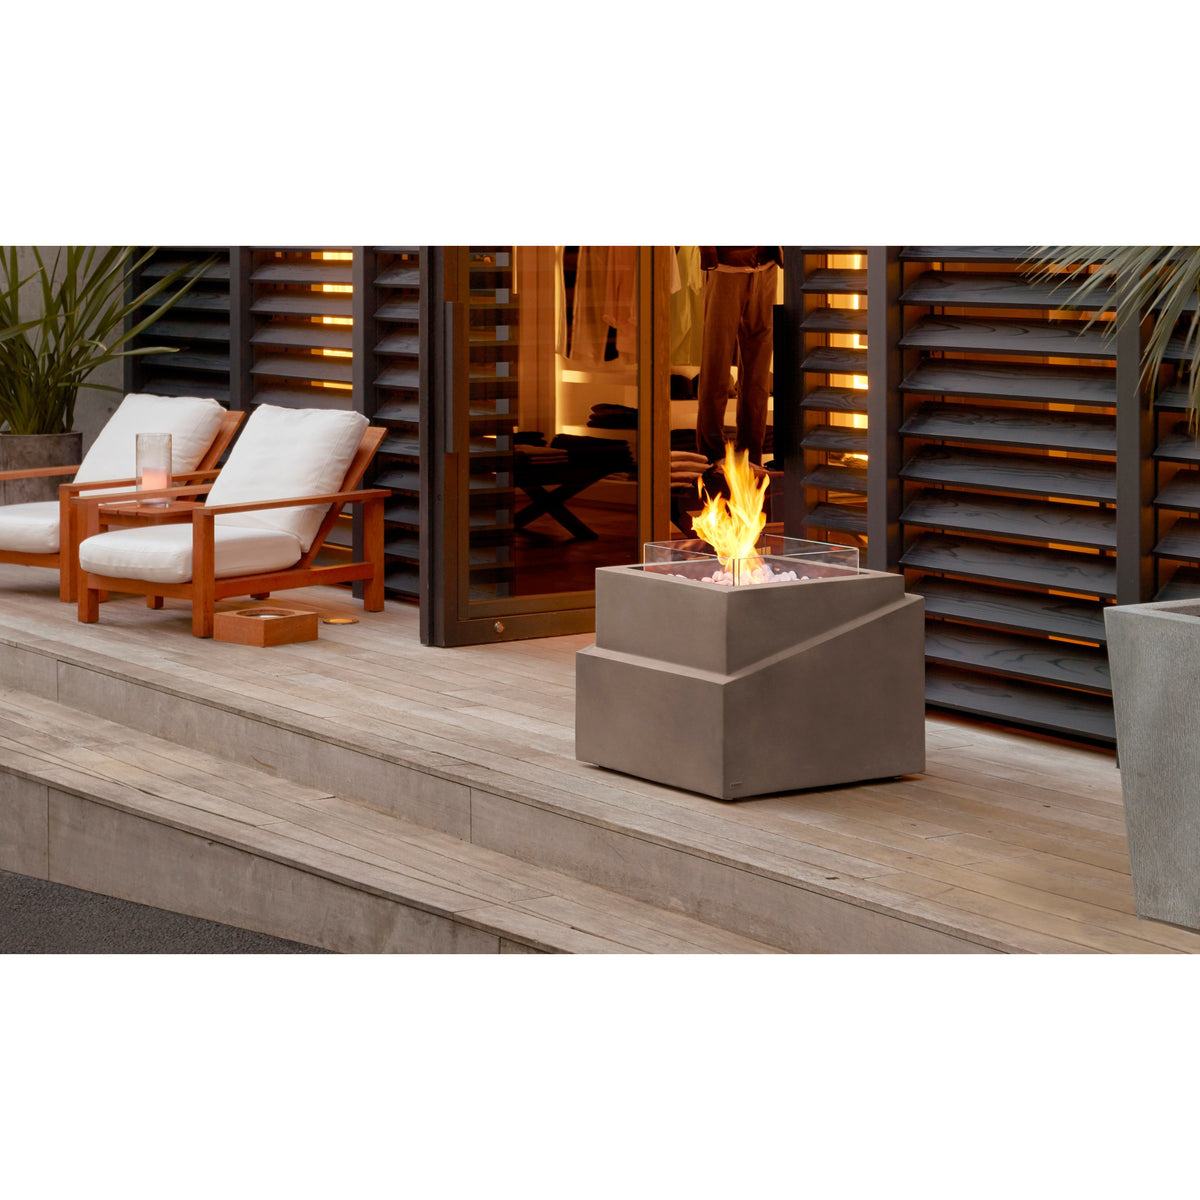 Step Ethanol Fireplace